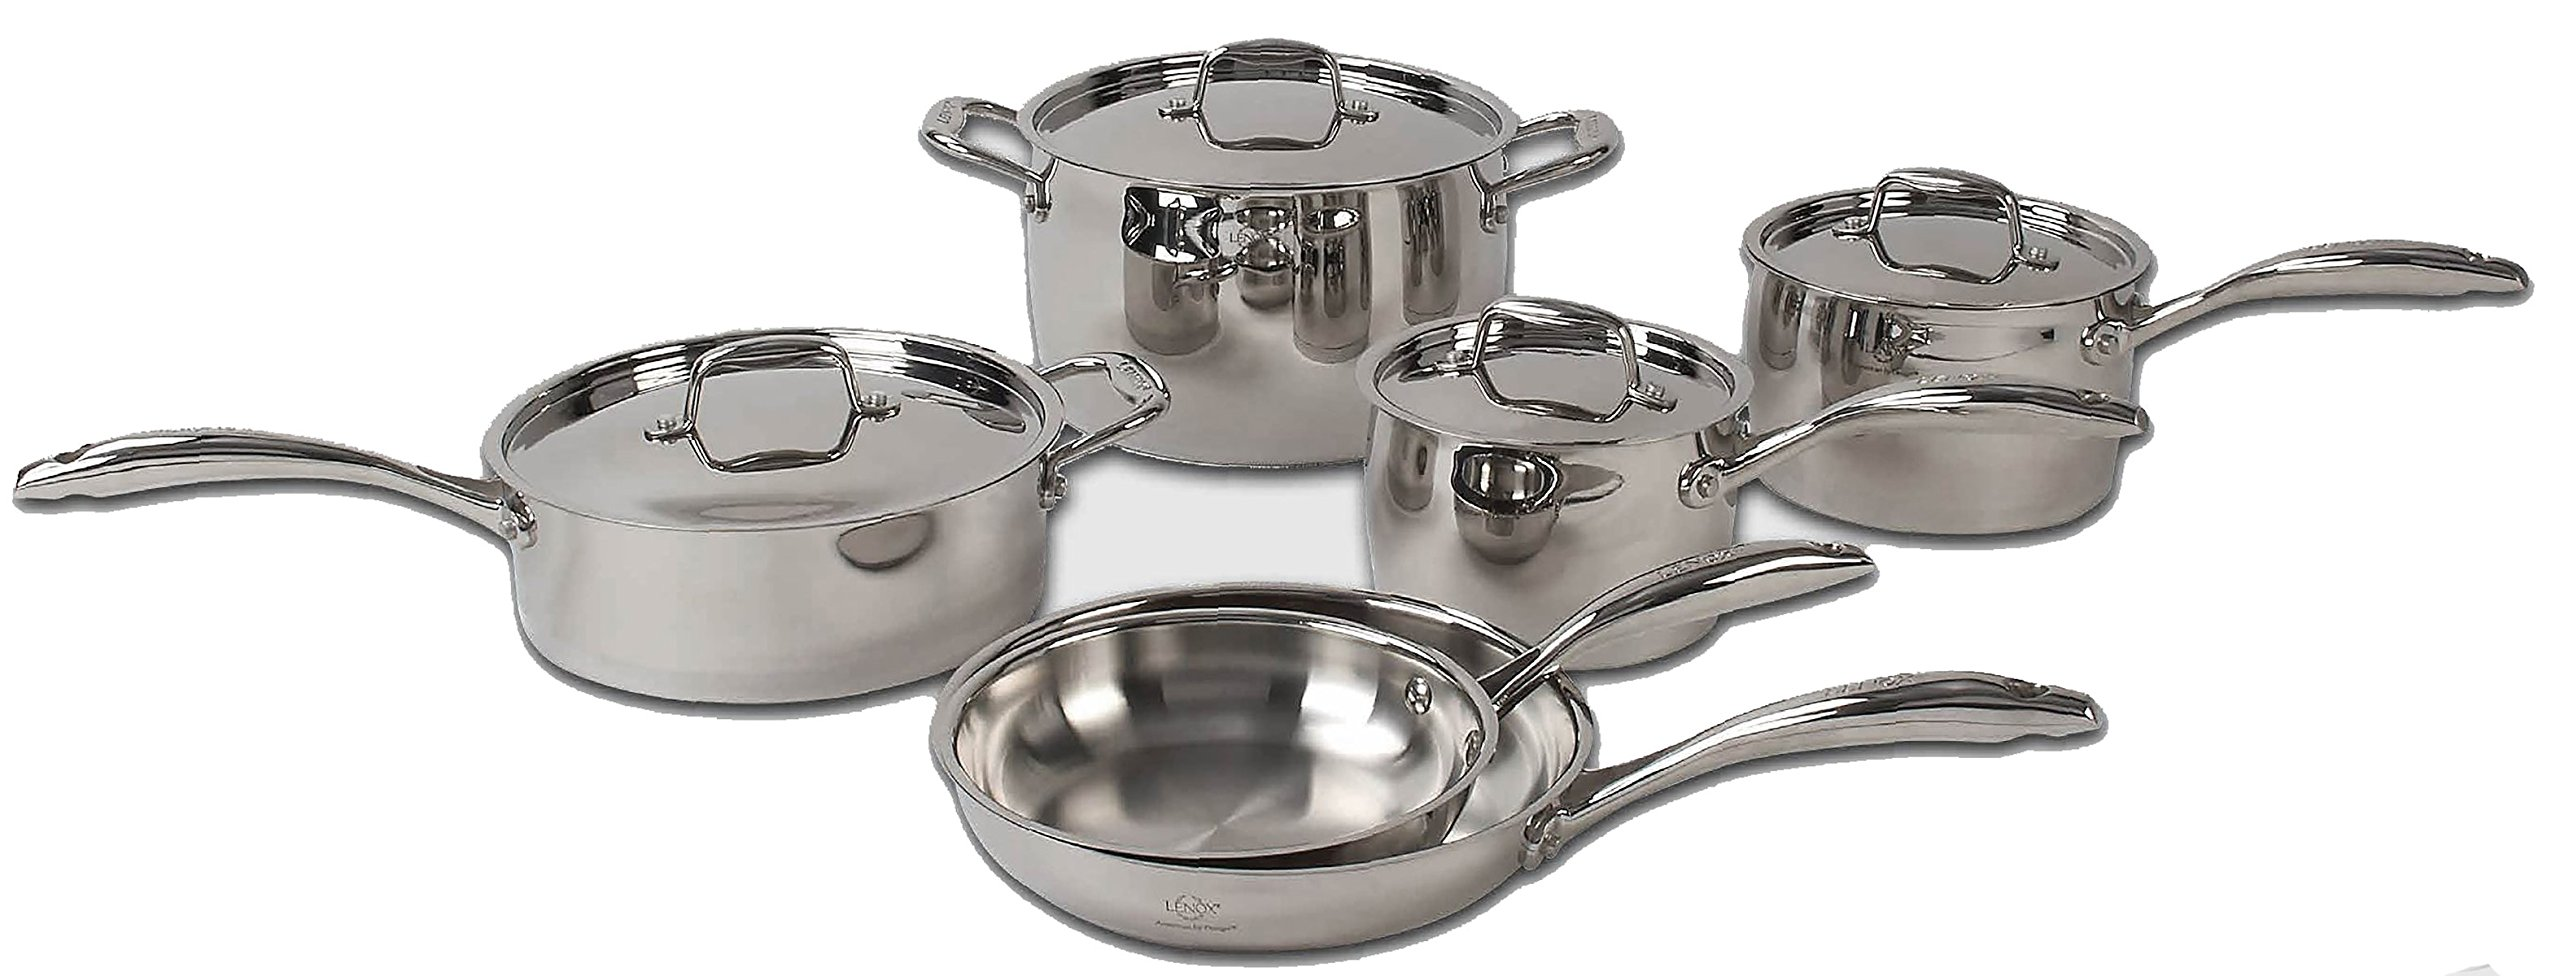 Lenox L 12360 Cookware Piece Stainless